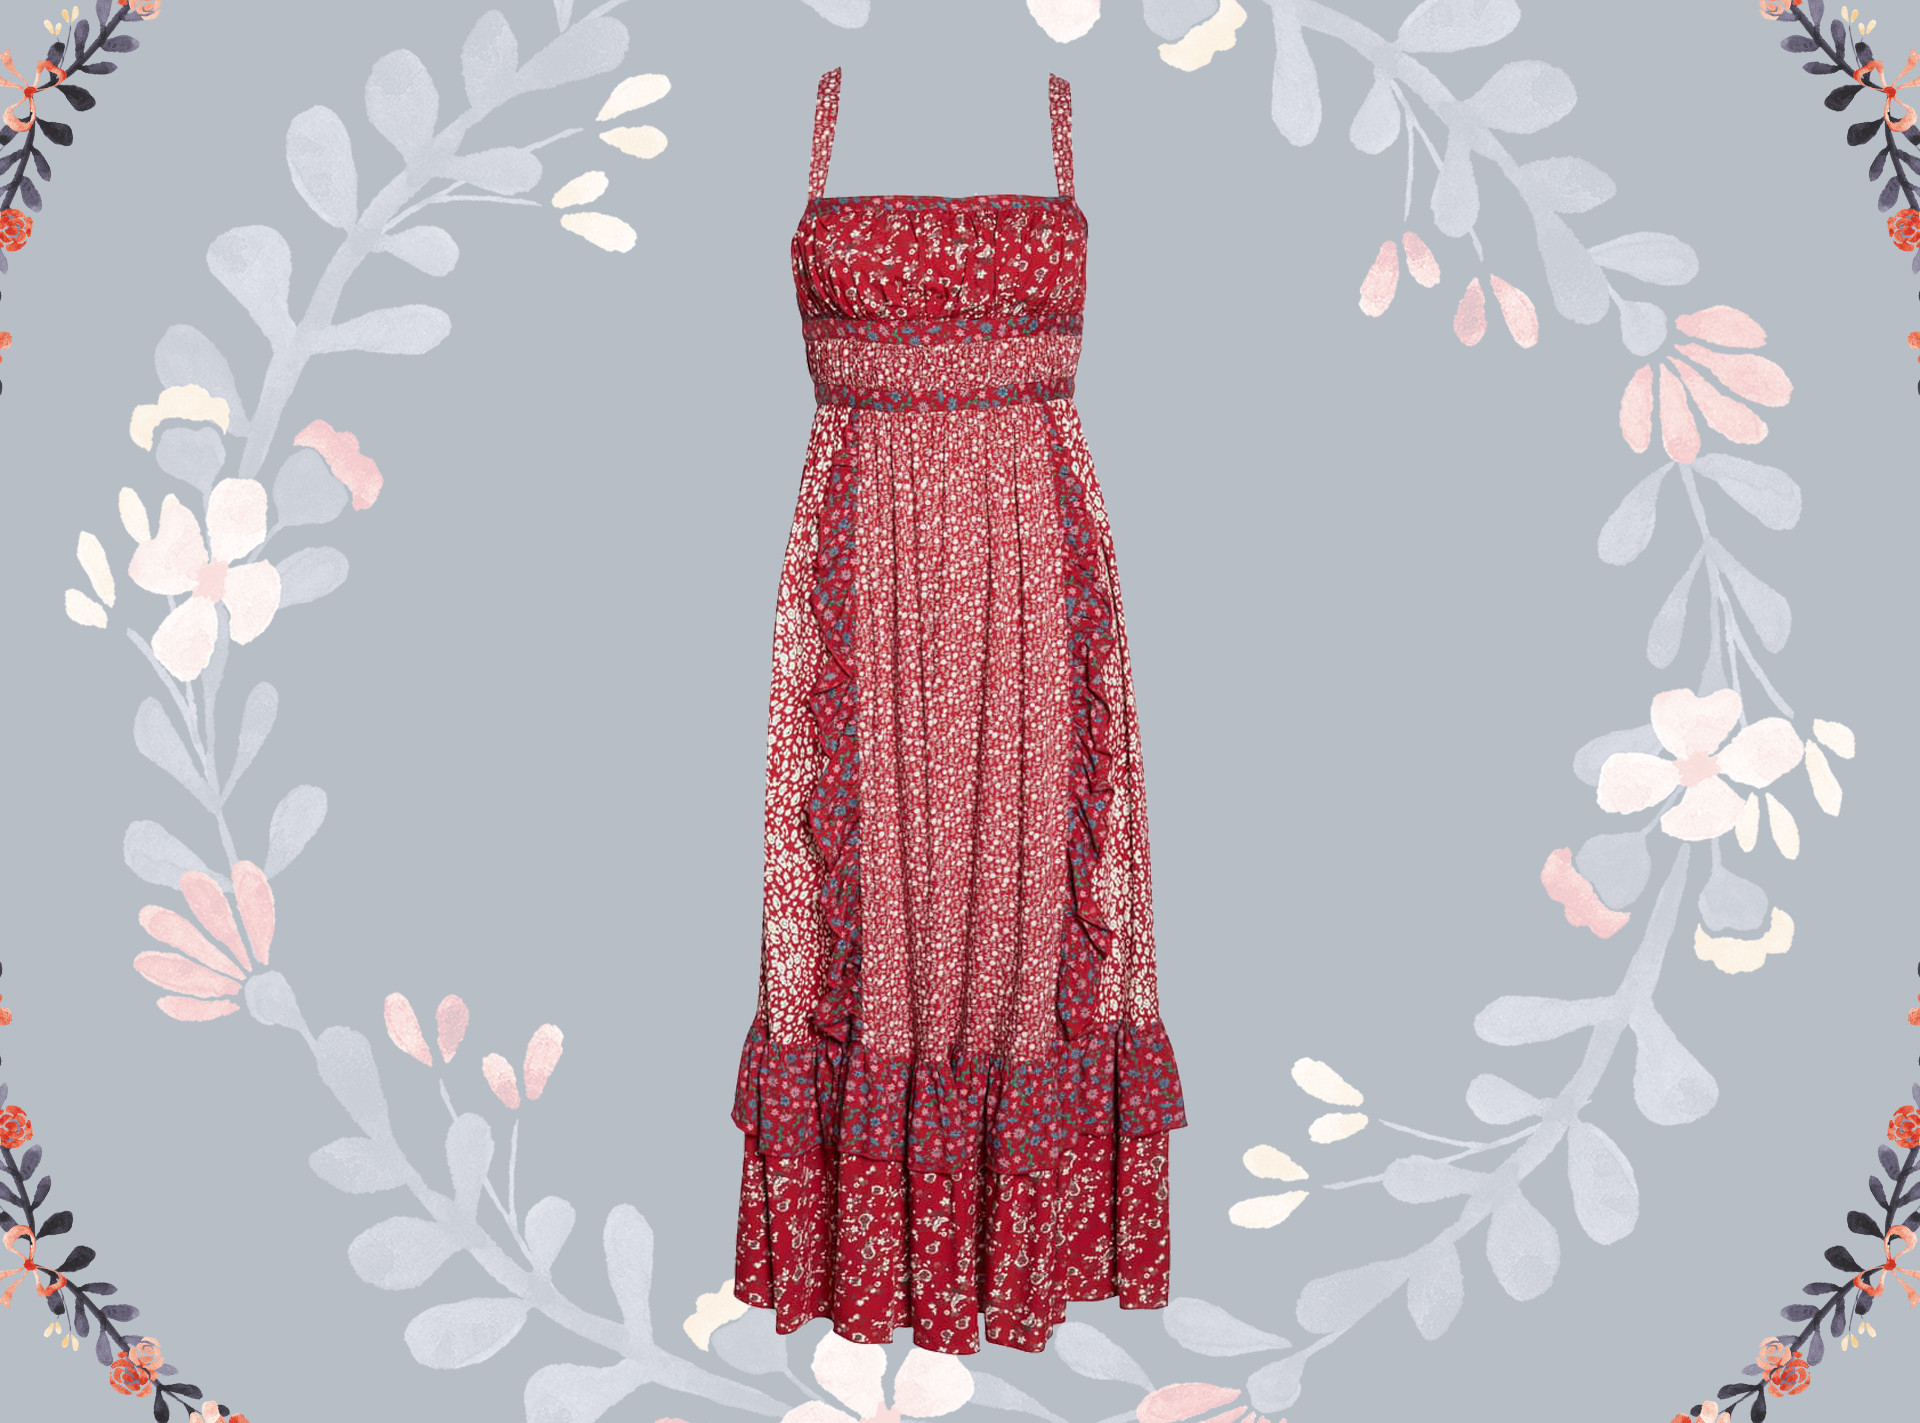 Boho Dresses on Sale Now—Just in Time for Coachella